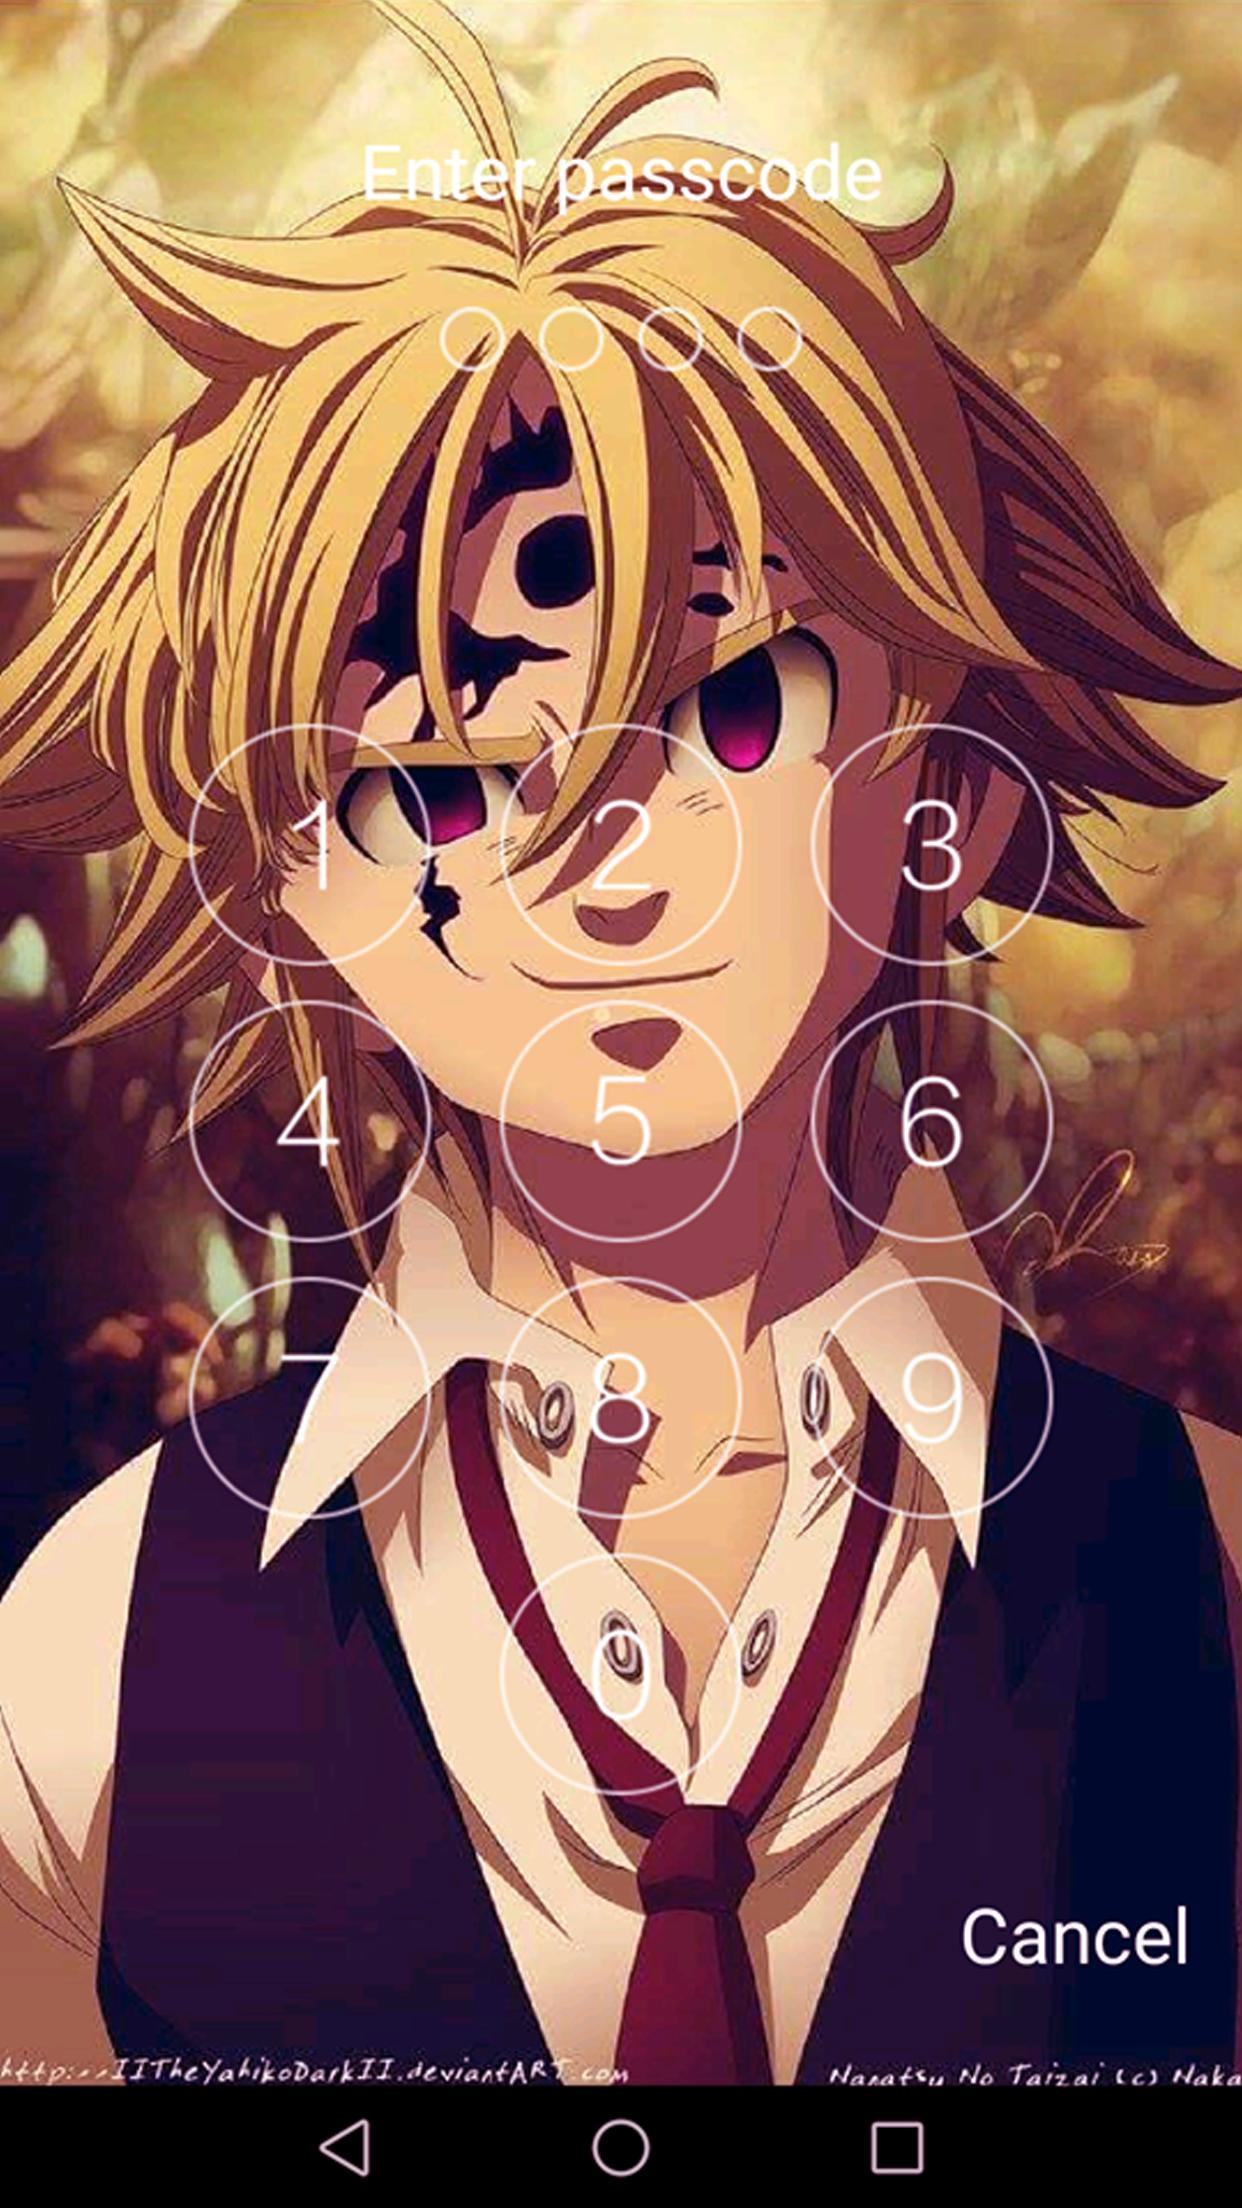 Keypad For The Seven Deadly Sins Wallpaper Hd 2018 For Android